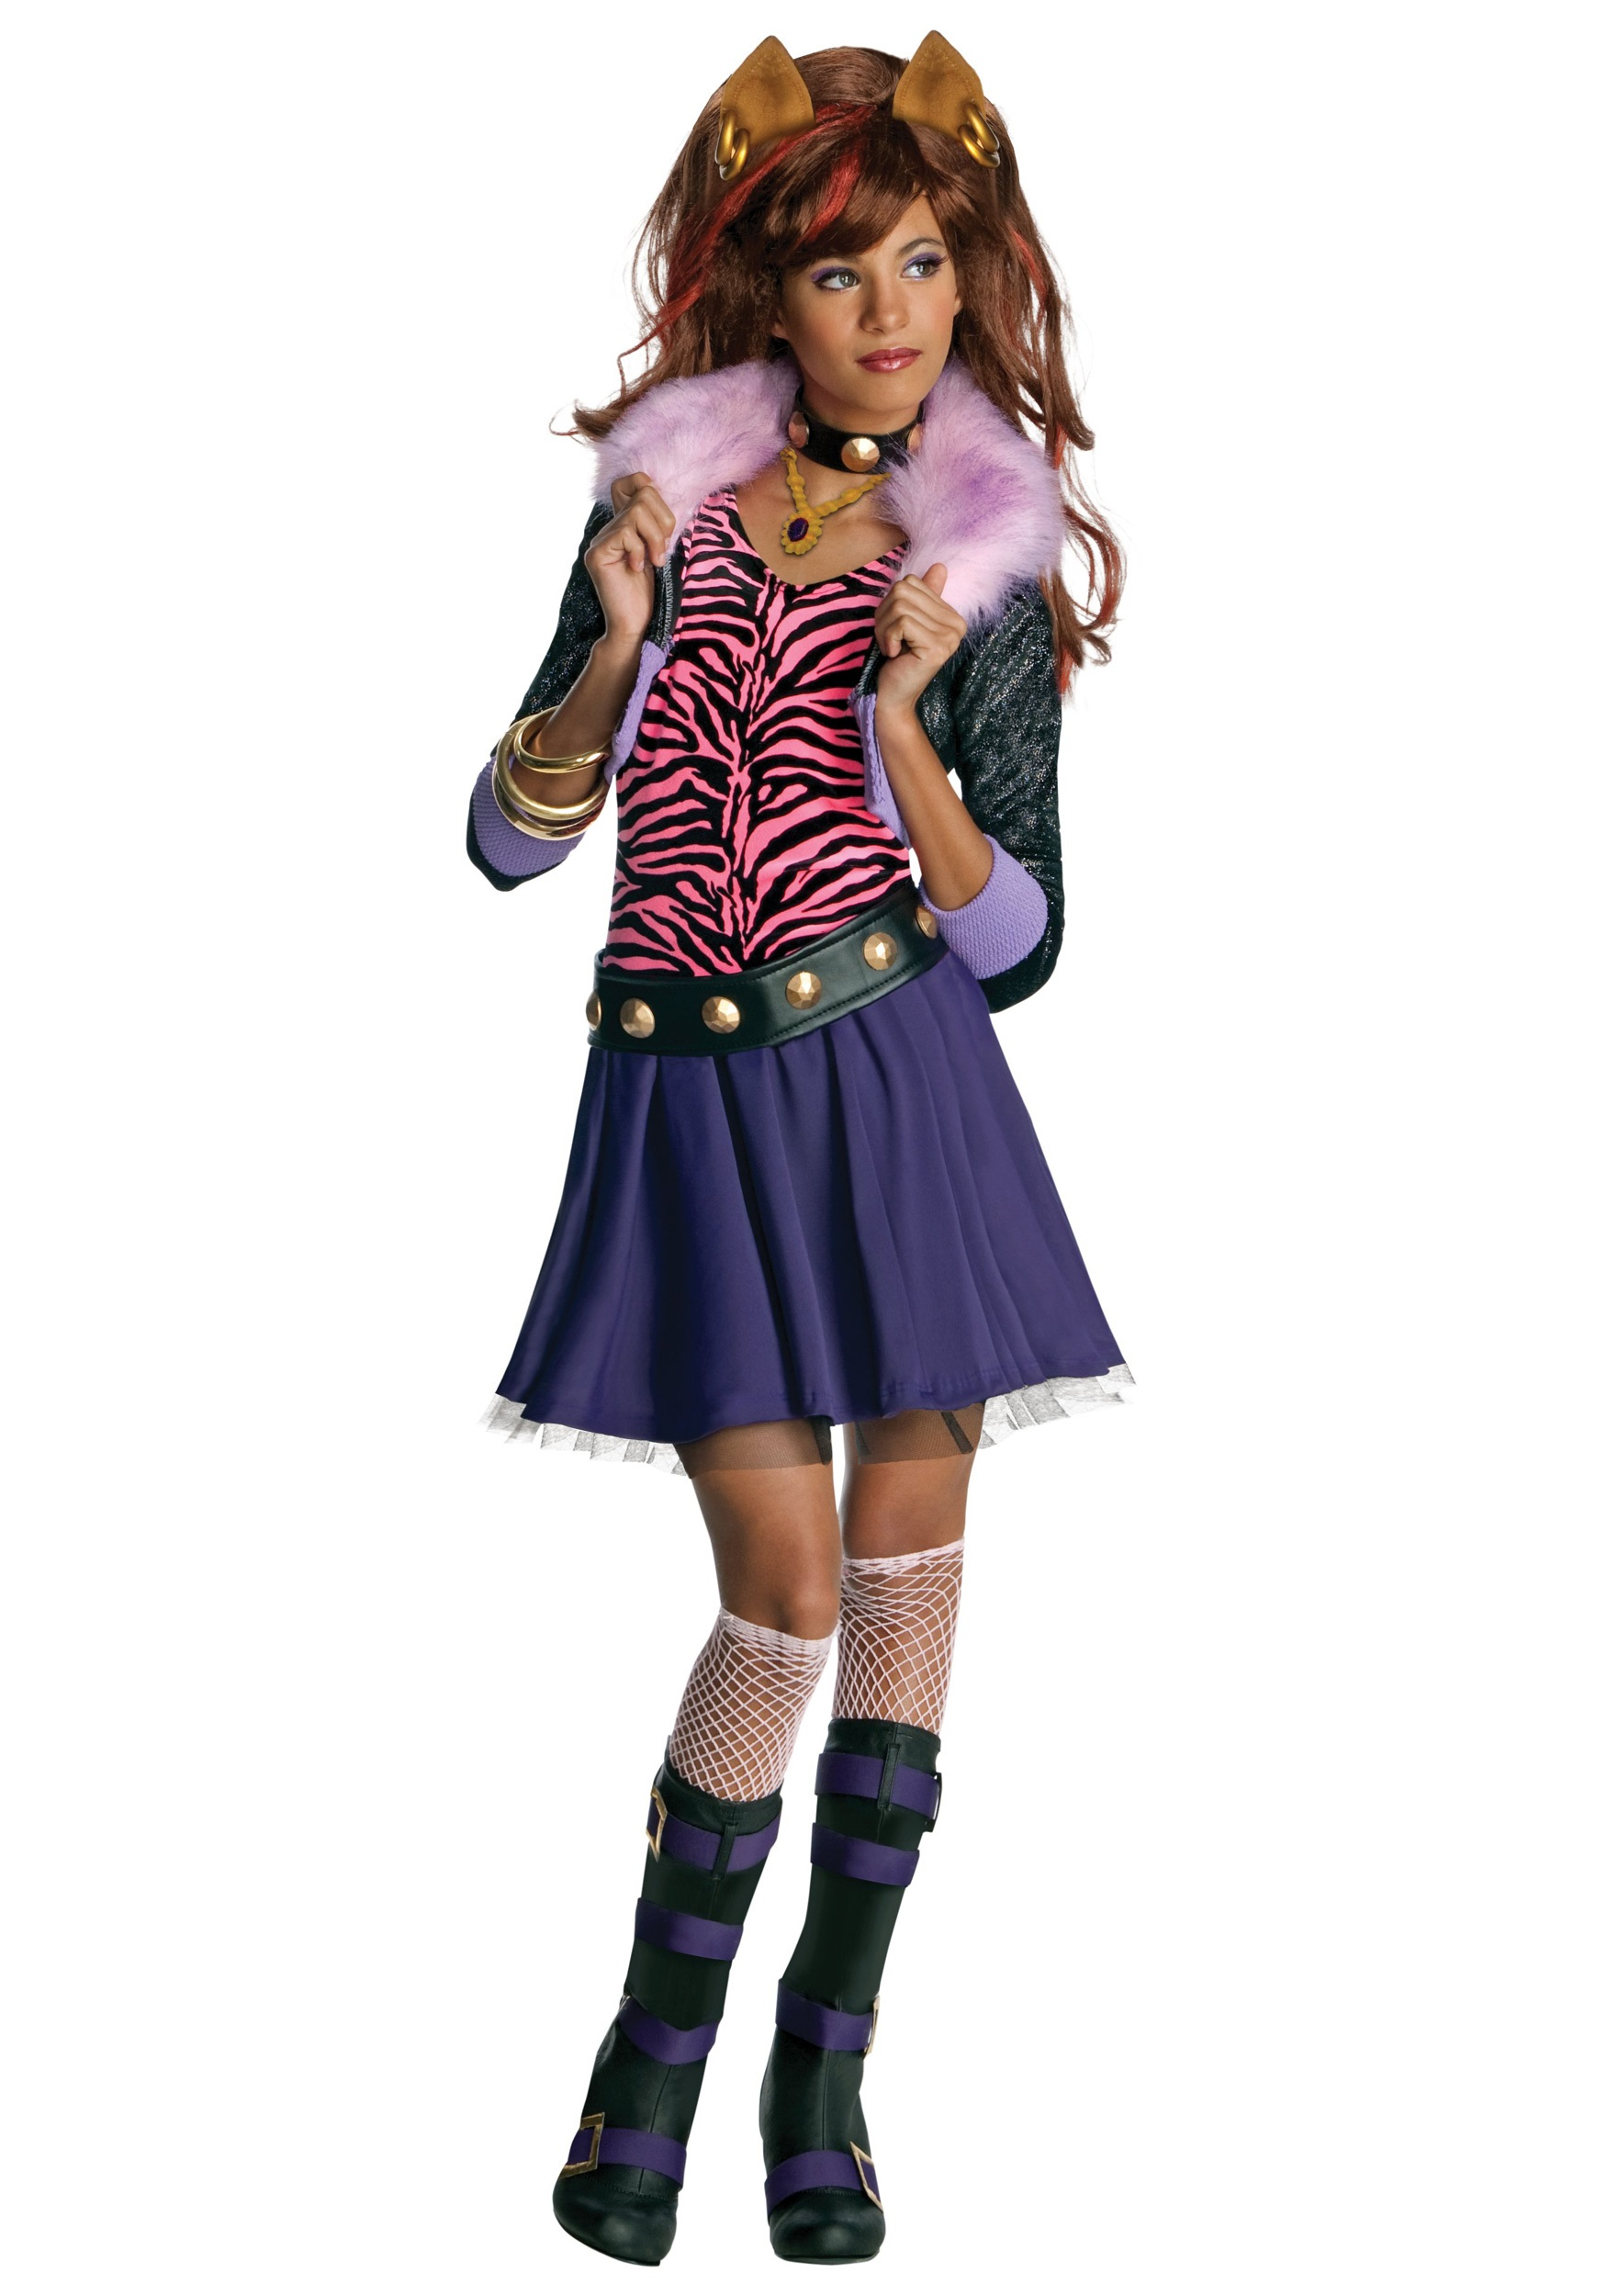 1de20e058a8eaab2af9fc35ce1b77086 further 4294728013 c833483a42 o as well clawdeen wolf by elfkena d5rog7d furthermore Clawdeen monster high 26104811 1135 1755 likewise  furthermore clawdeen wolf costume in addition  in addition  moreover  moreover Monster High monster high 30925859 1168 1751 further the lion king 1376704884 img. on coloring pages monster high claudeen